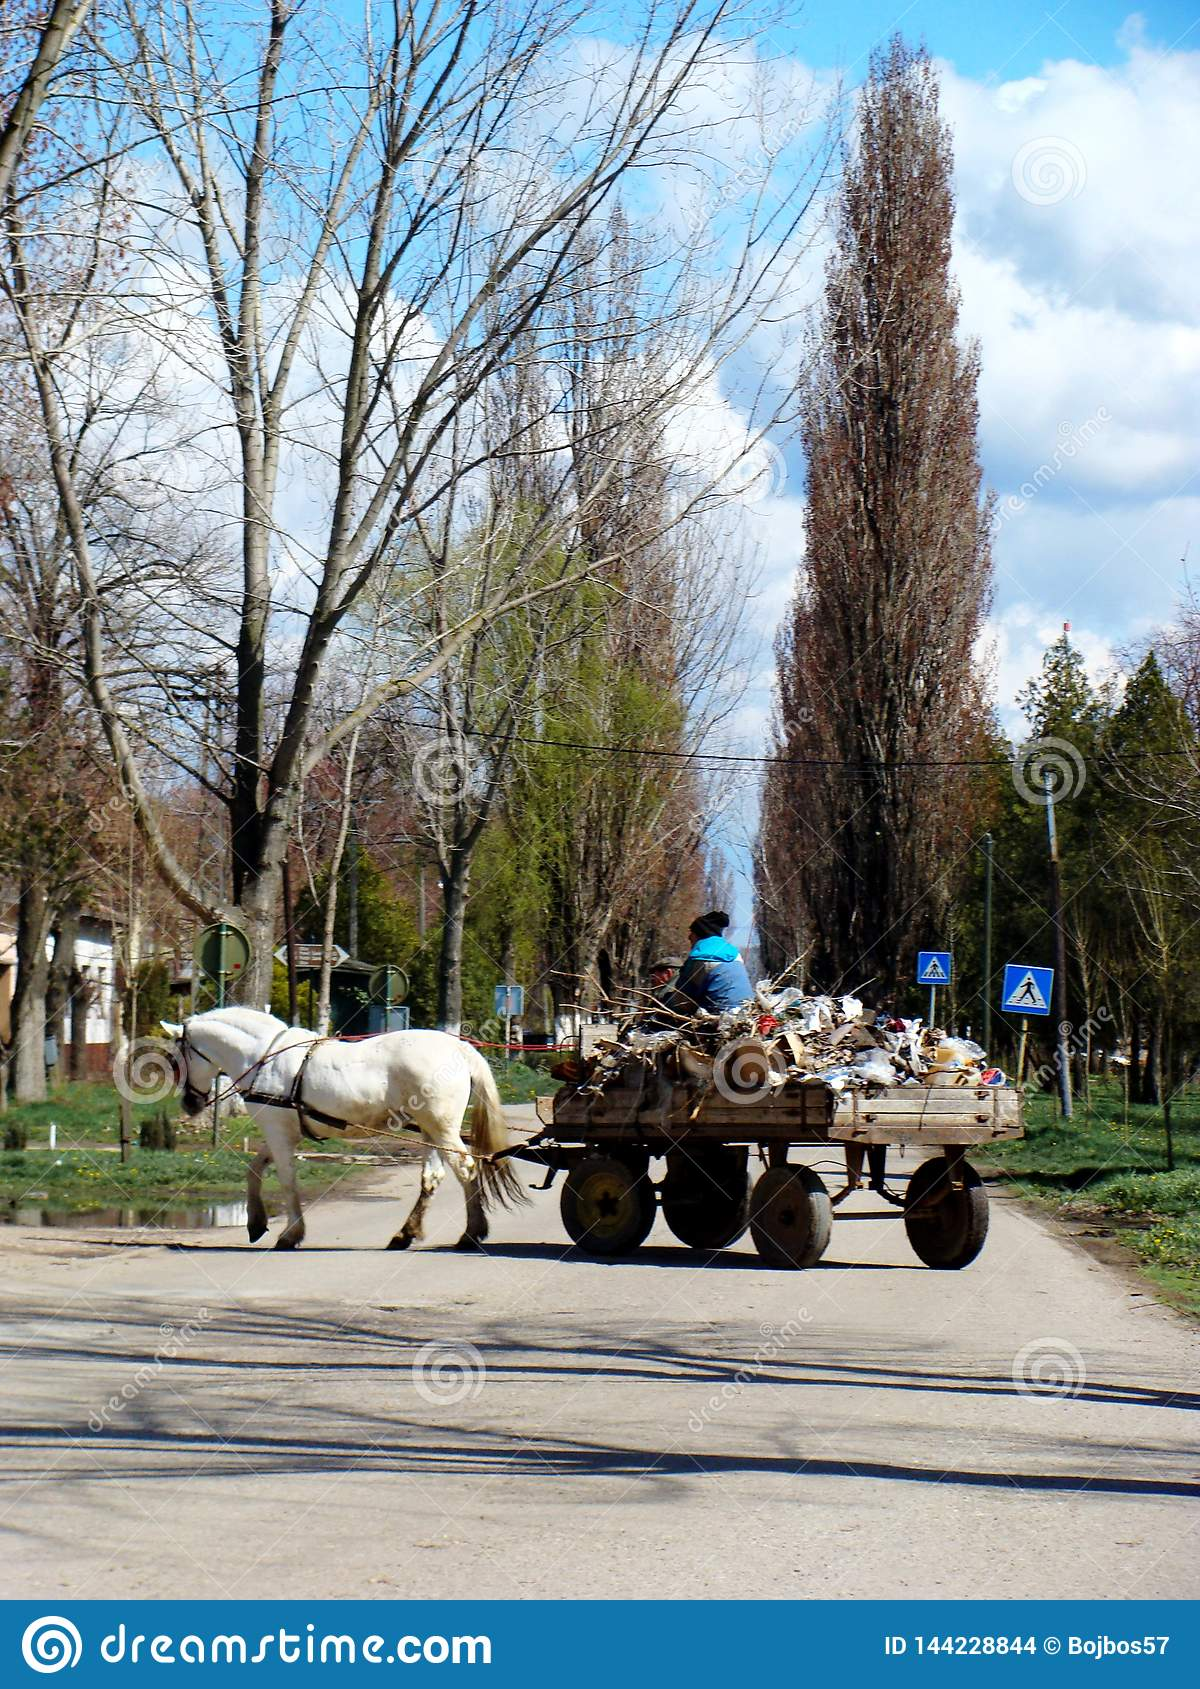 Village Debeljaca, Vojvodina, Serbia. Gipsy wagon in the center of the village. White horse. Wagon full of various material.